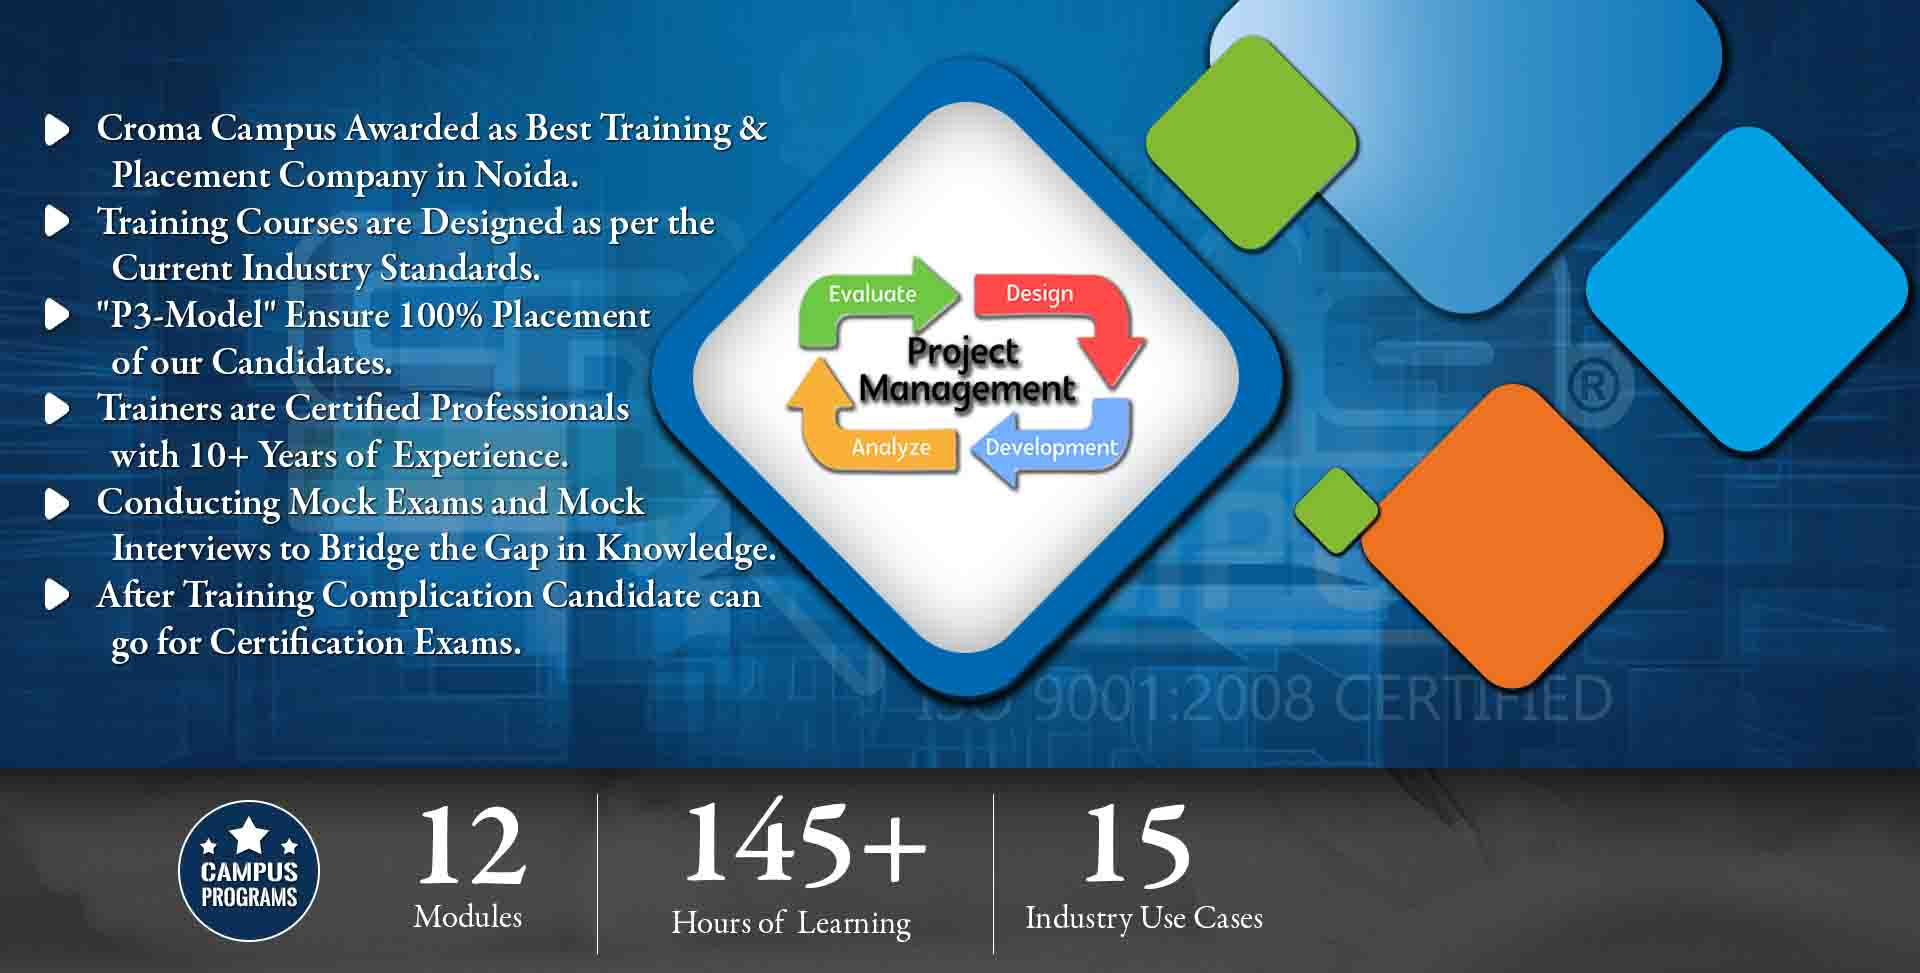 Project Management Training in Gurgaon- Croma Campus